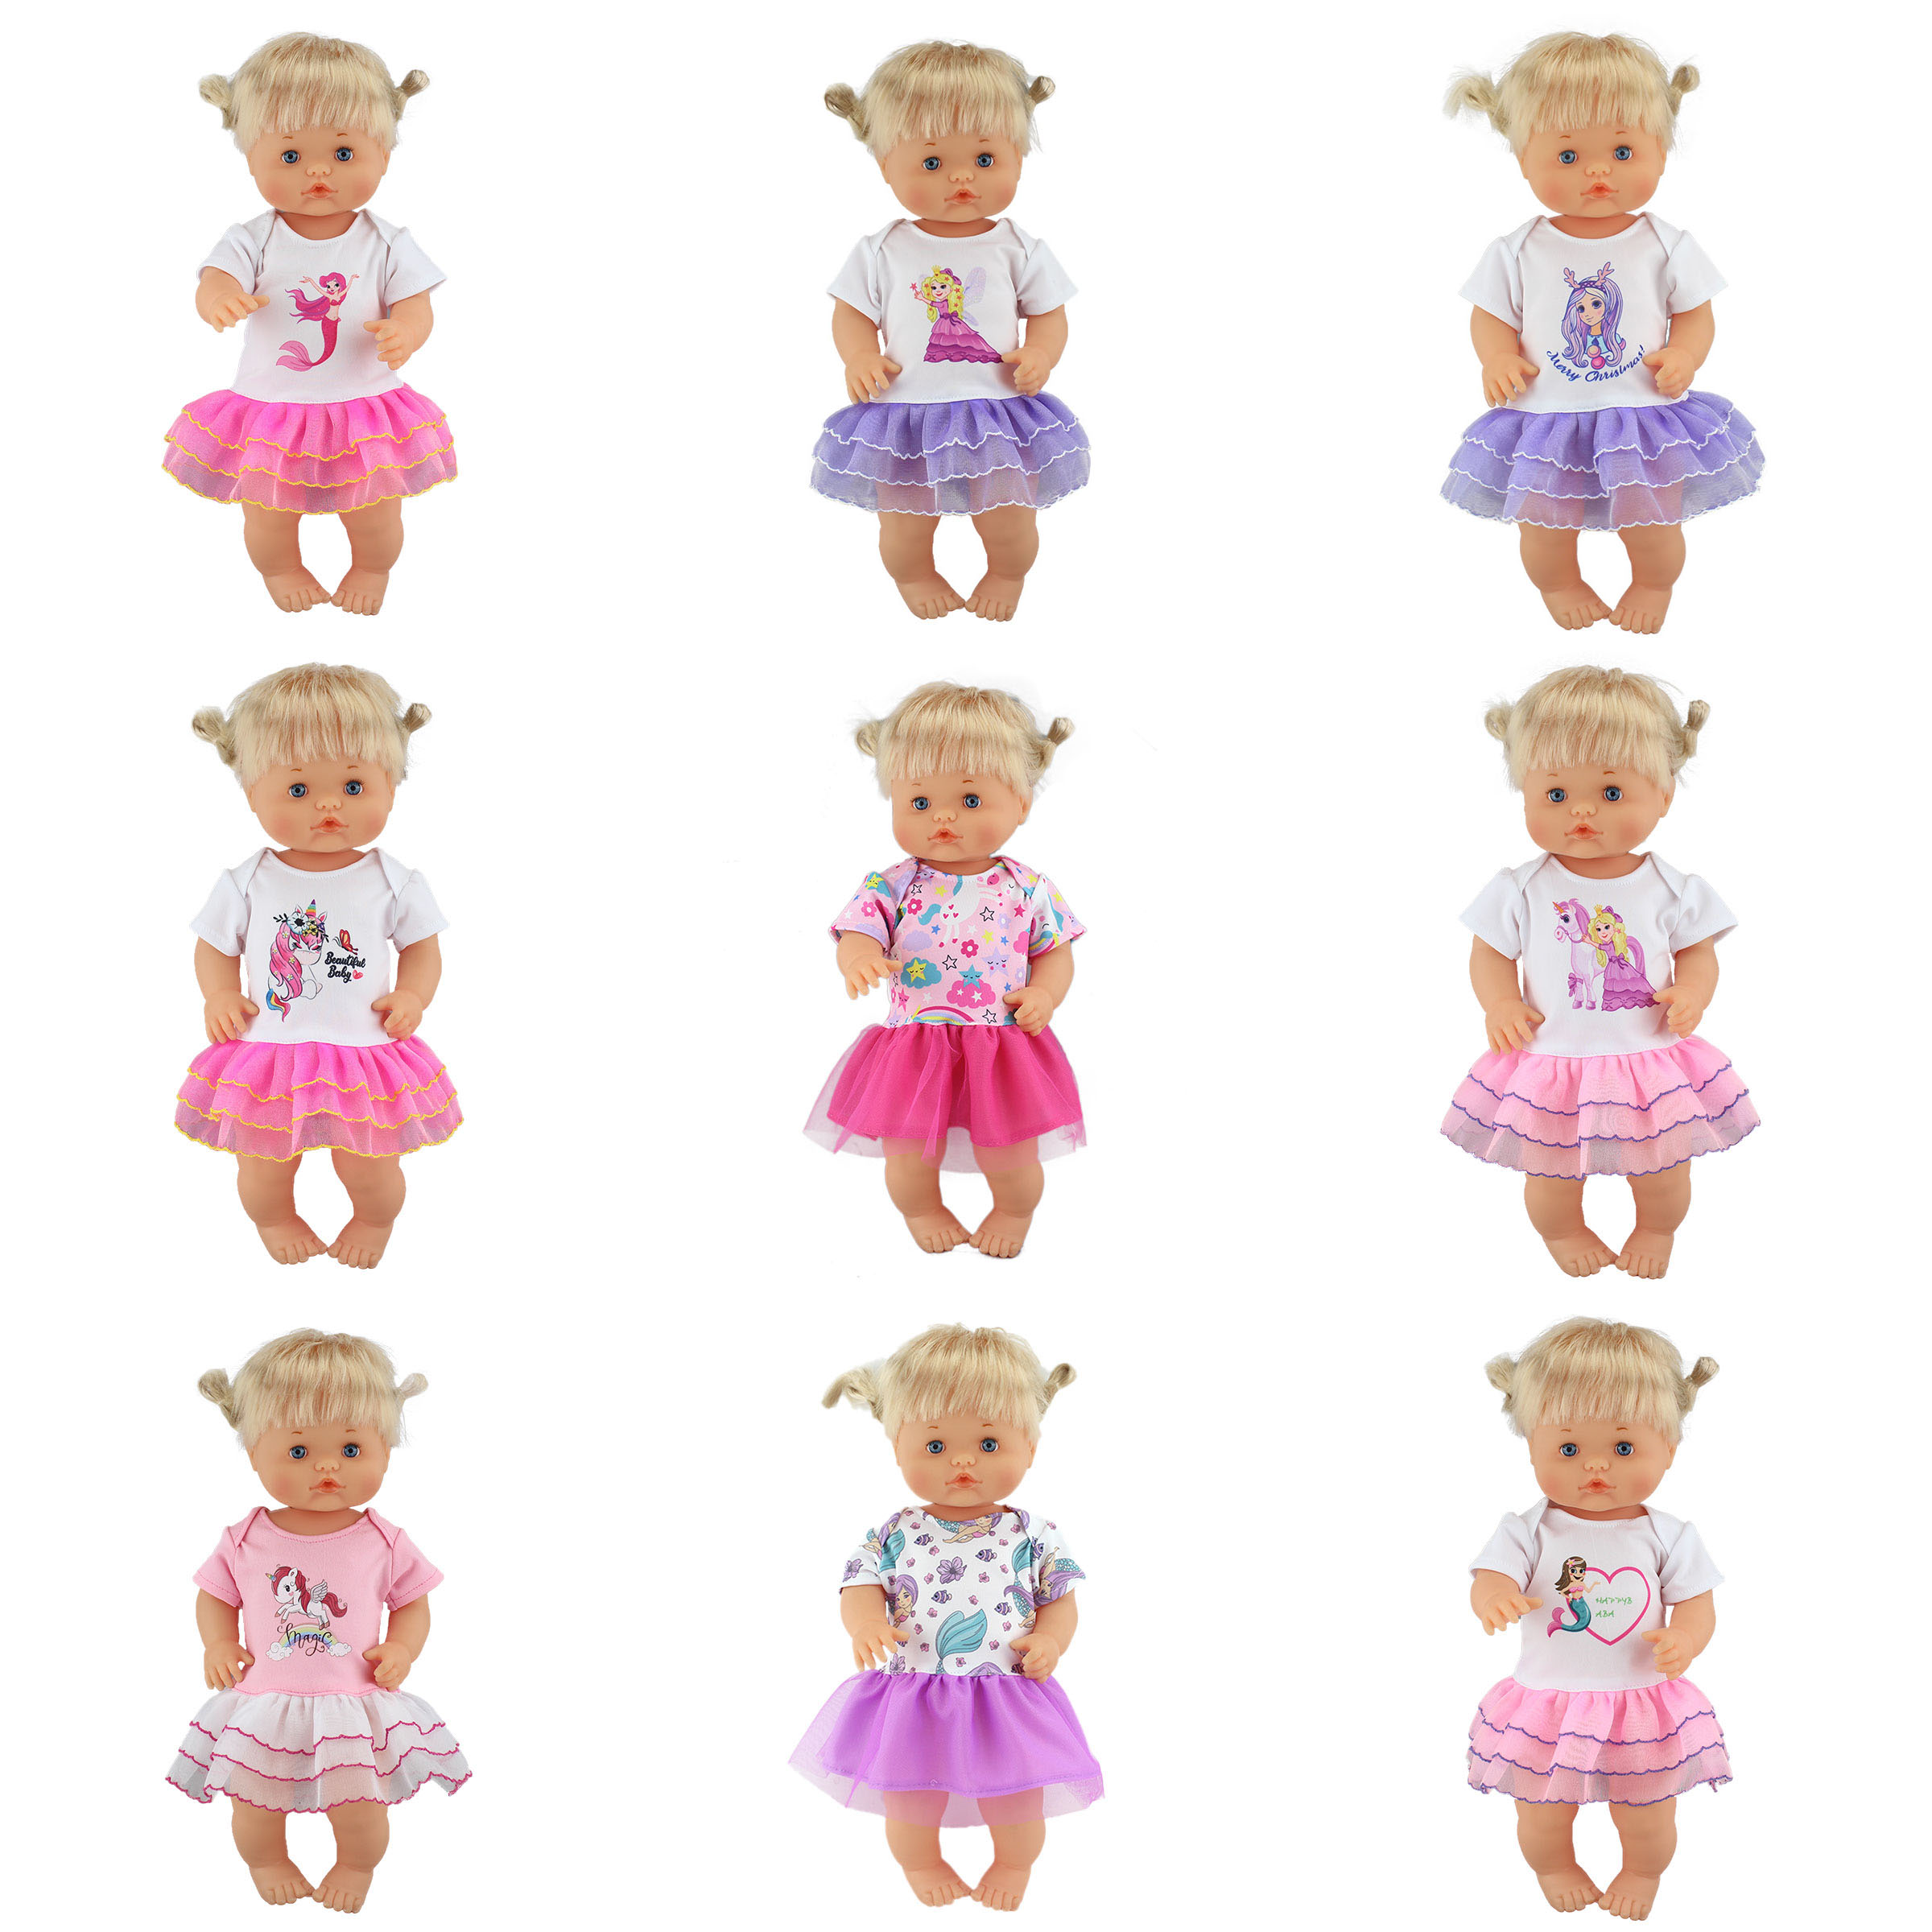 Candy Color Dress Set Doll Clothes Fit 42cm Nenuco Doll Nenuco Su Hermanita Doll Accessories